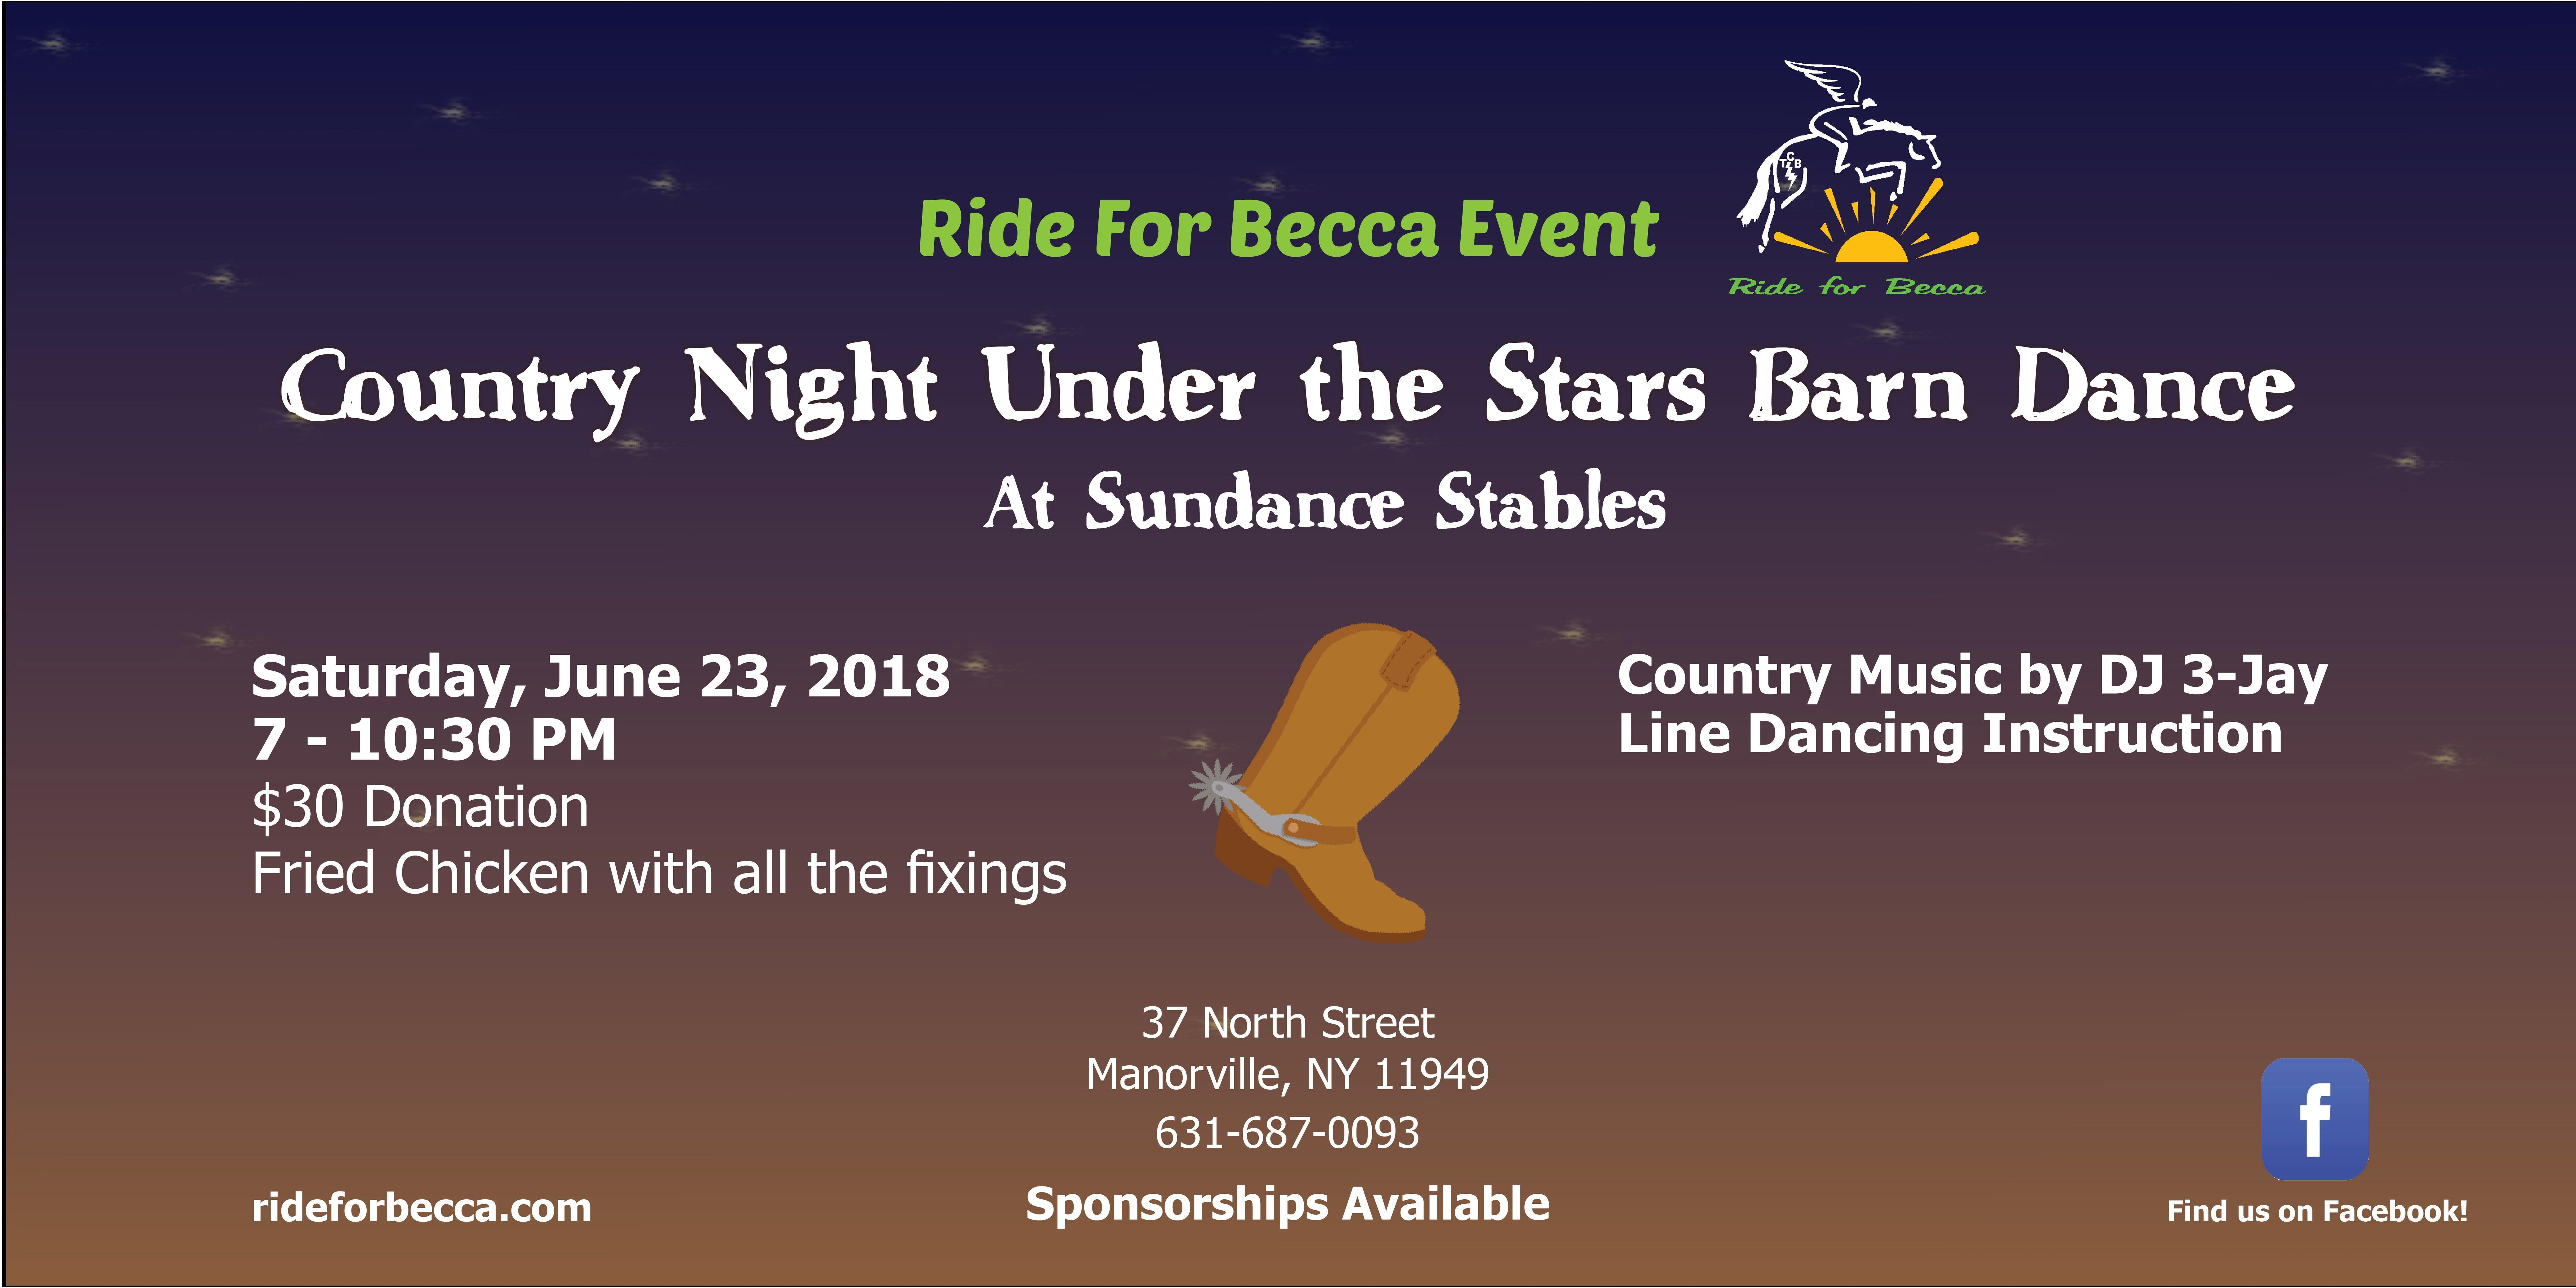 Country Night Under the Stars